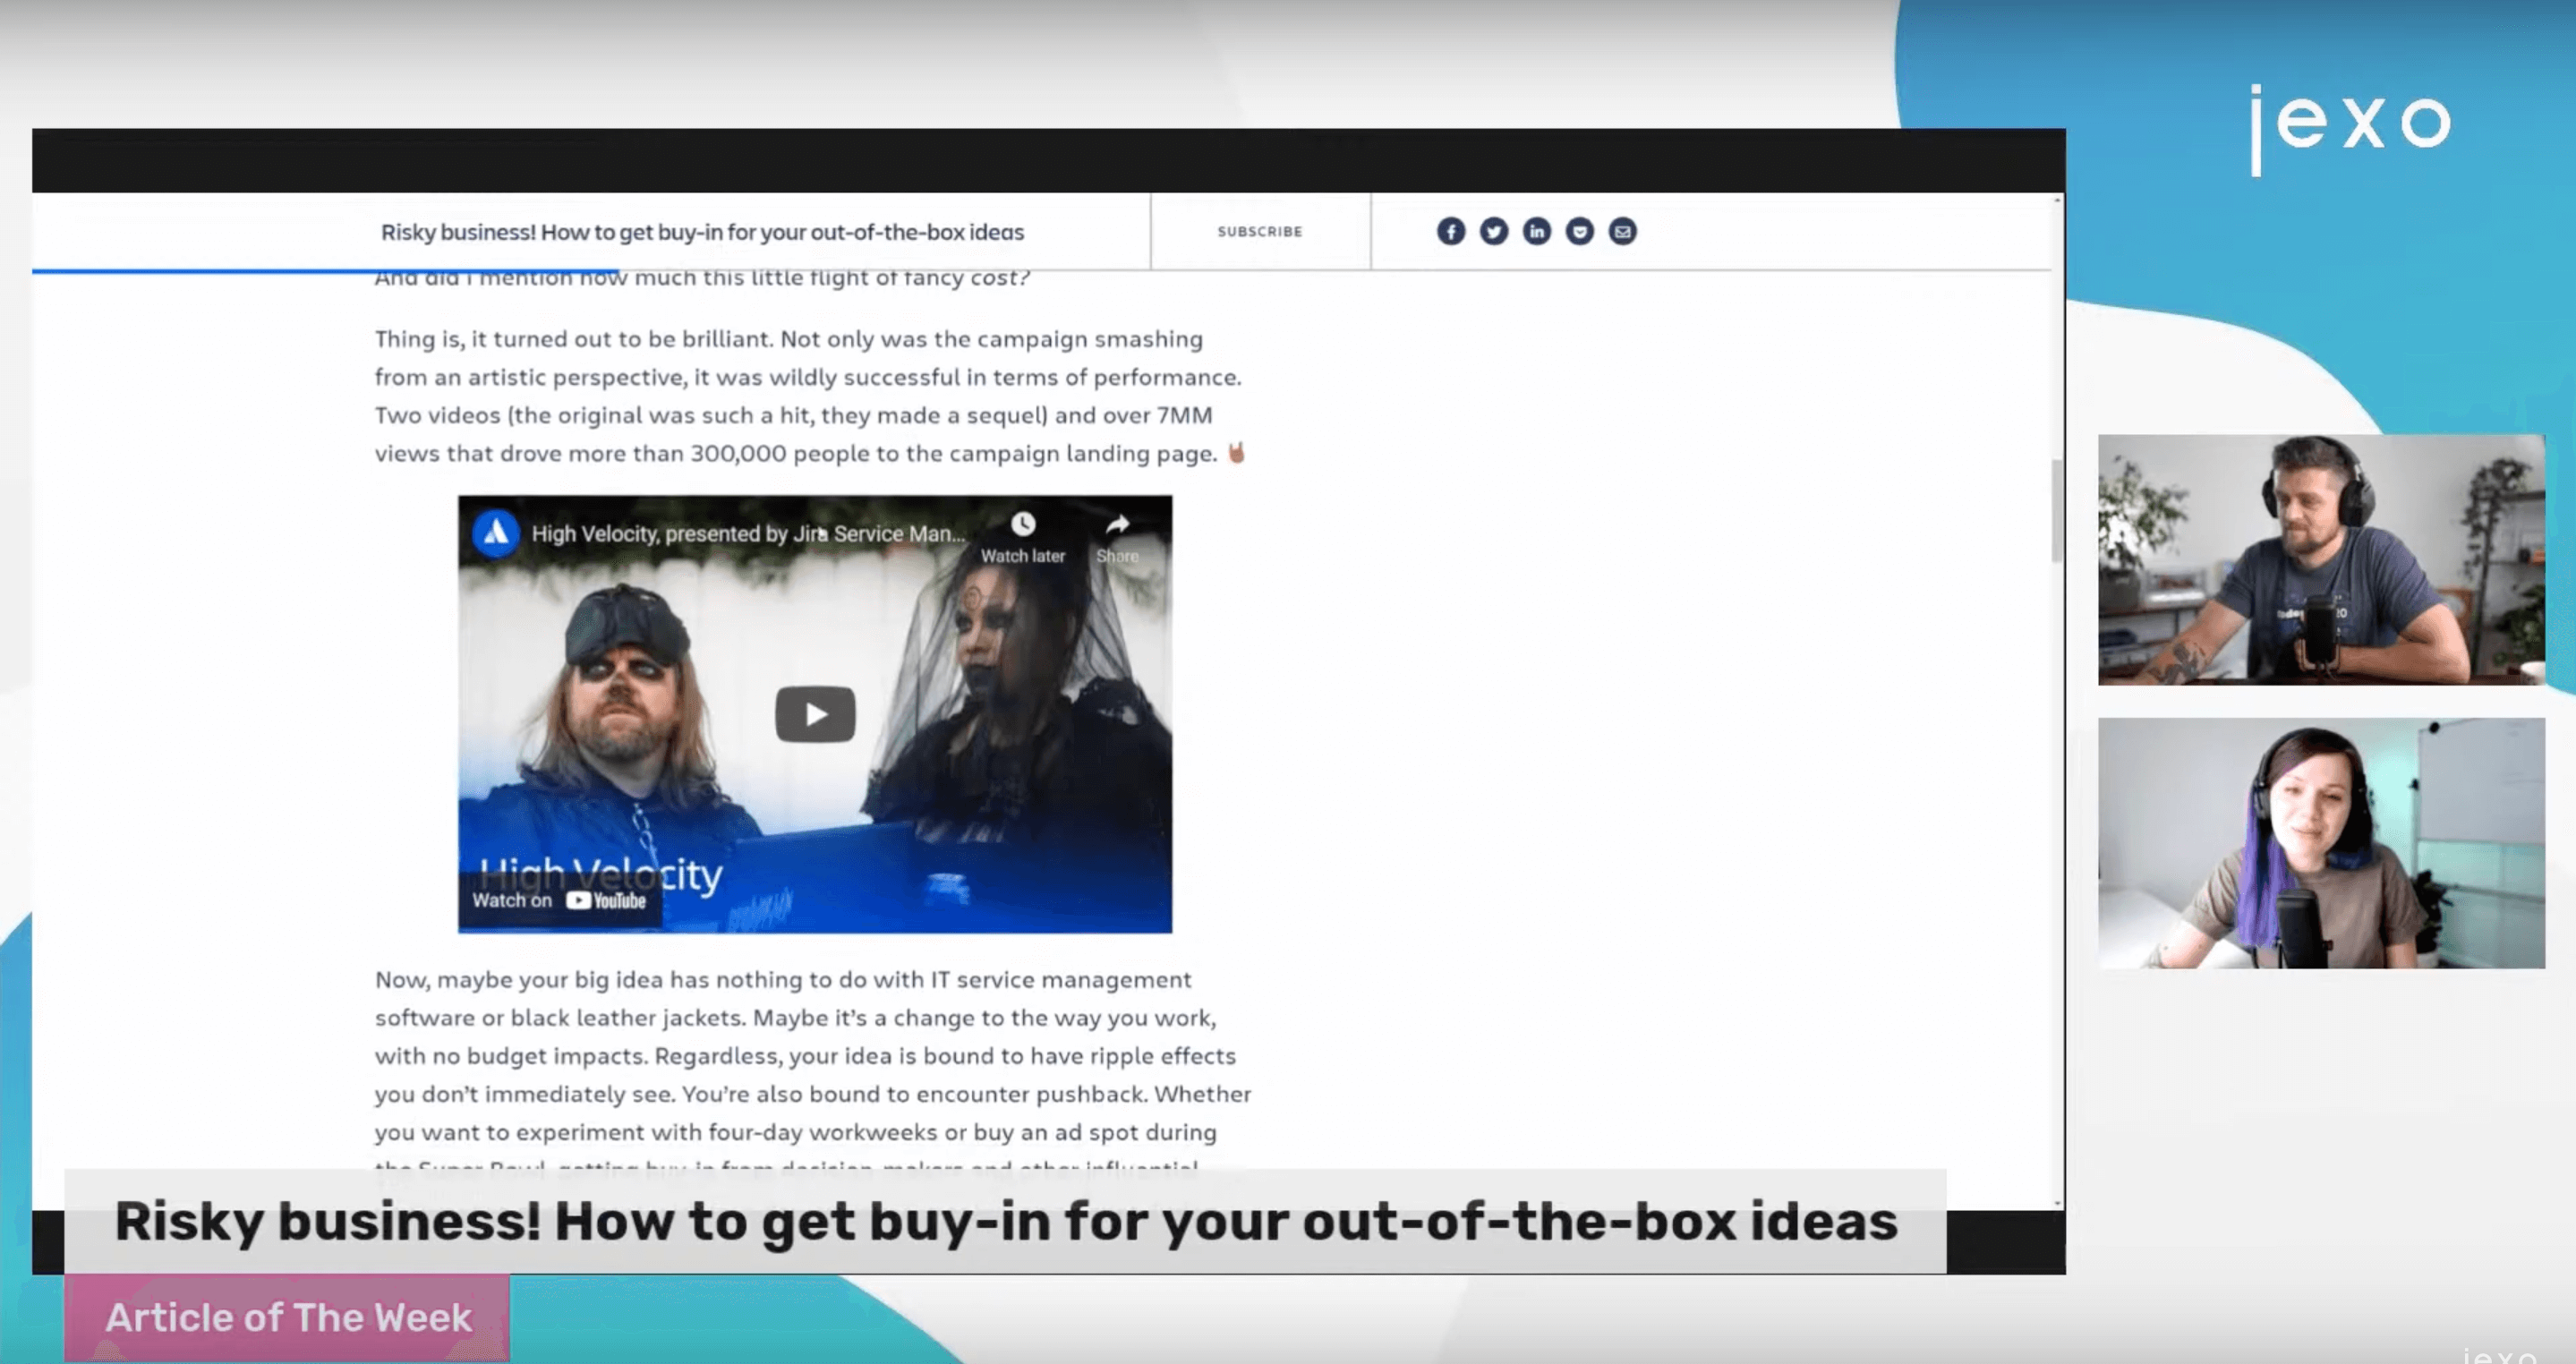 Atlassian News: New article about How to get buy in for risky ideas